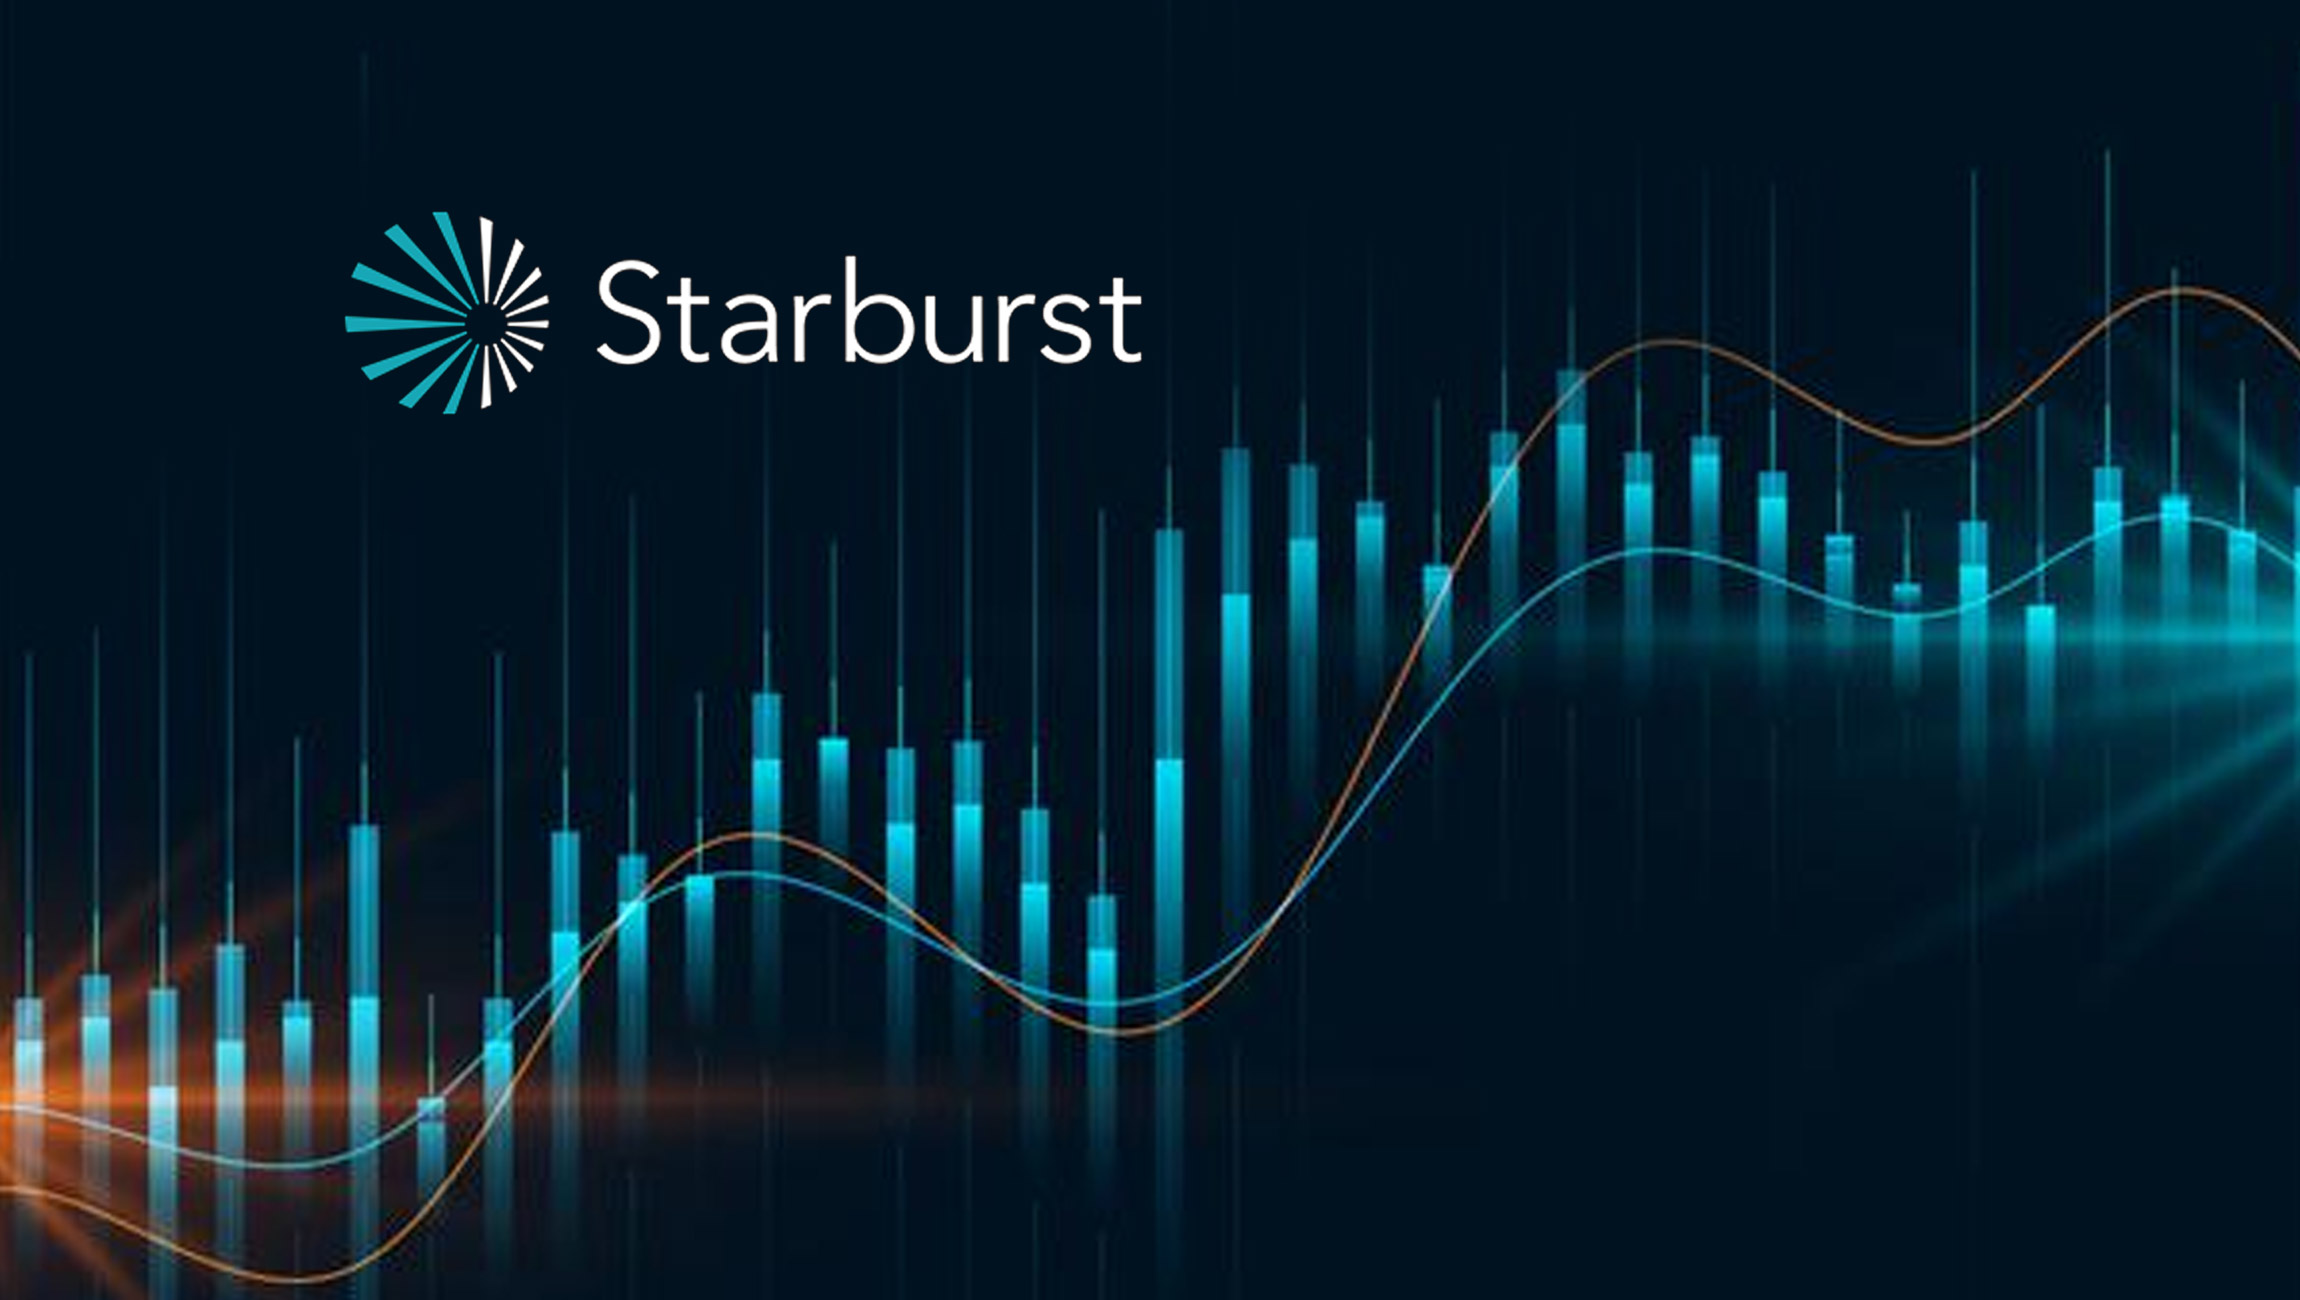 Starburst Announces New Product Release Including Advanced Lakehouse Analytics Capabilities 1